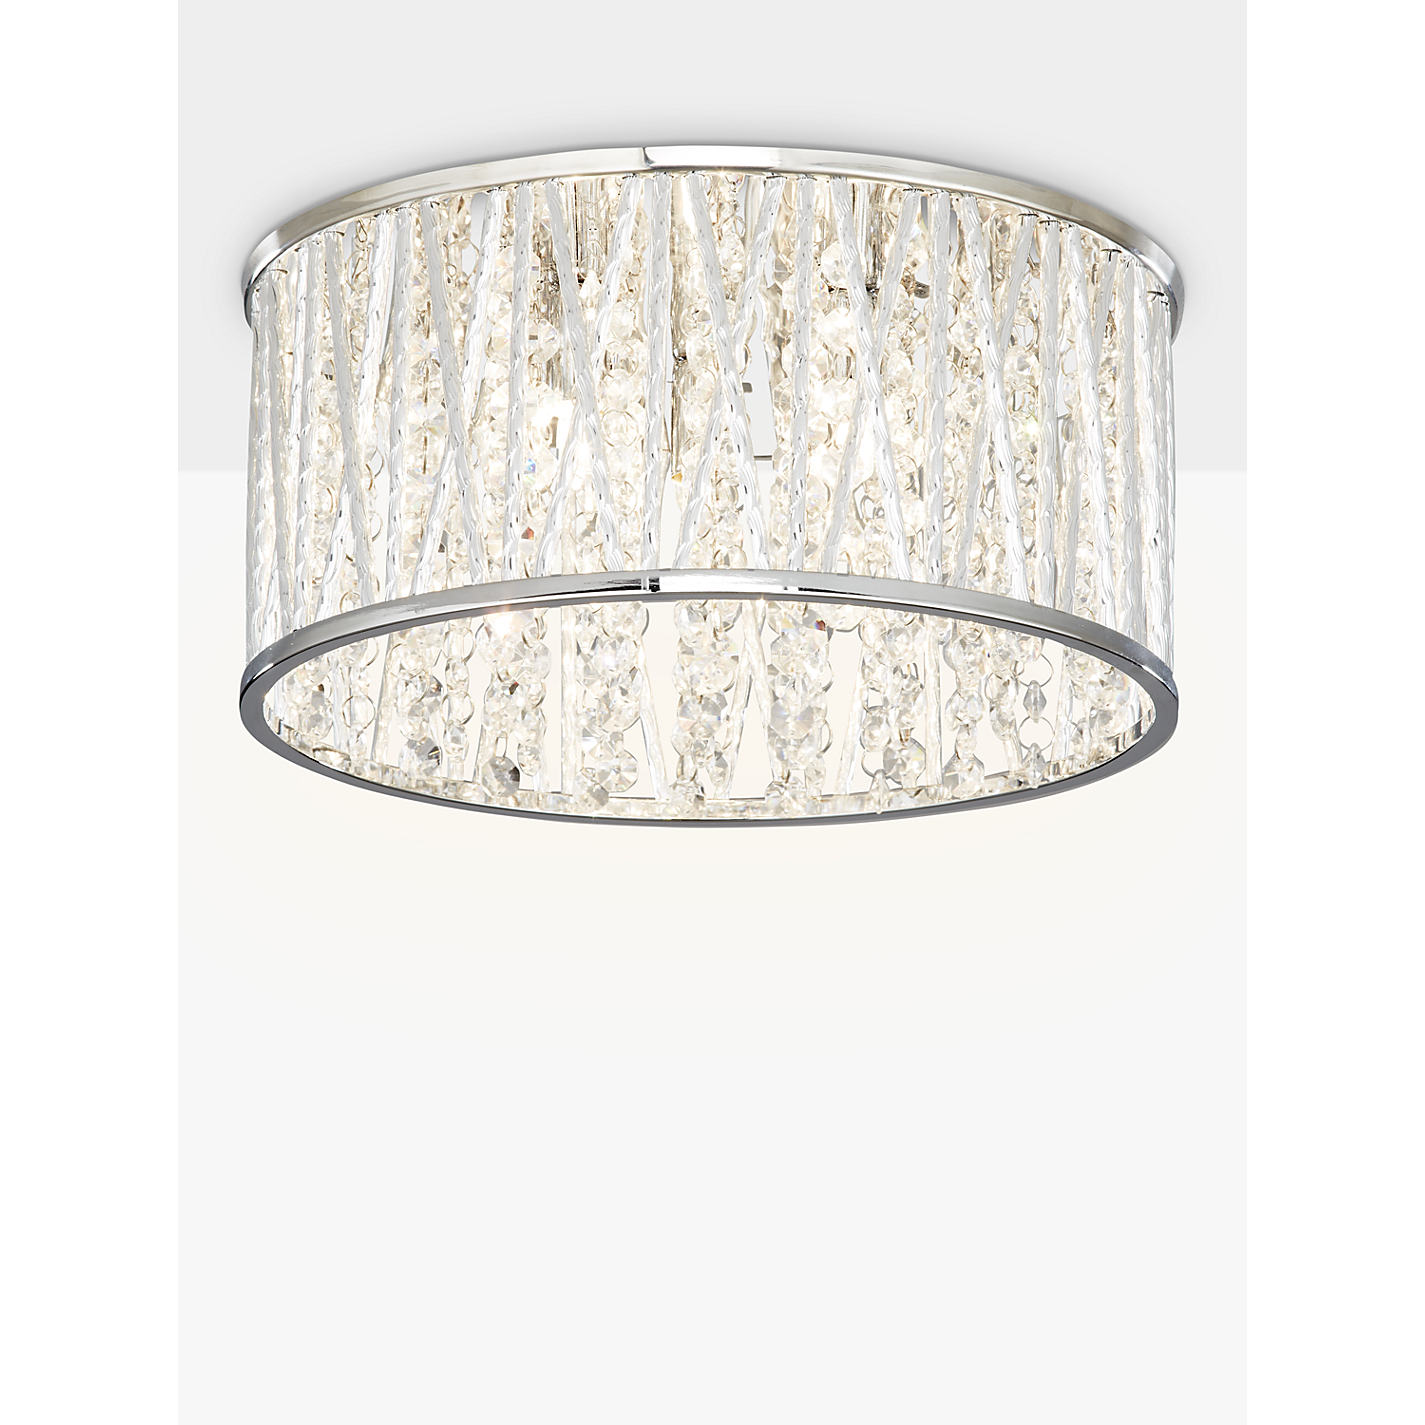 Buy john lewis emilia crystal drum flush ceiling light john lewis buy john lewis emilia crystal drum flush ceiling light online at johnlewis aloadofball Gallery